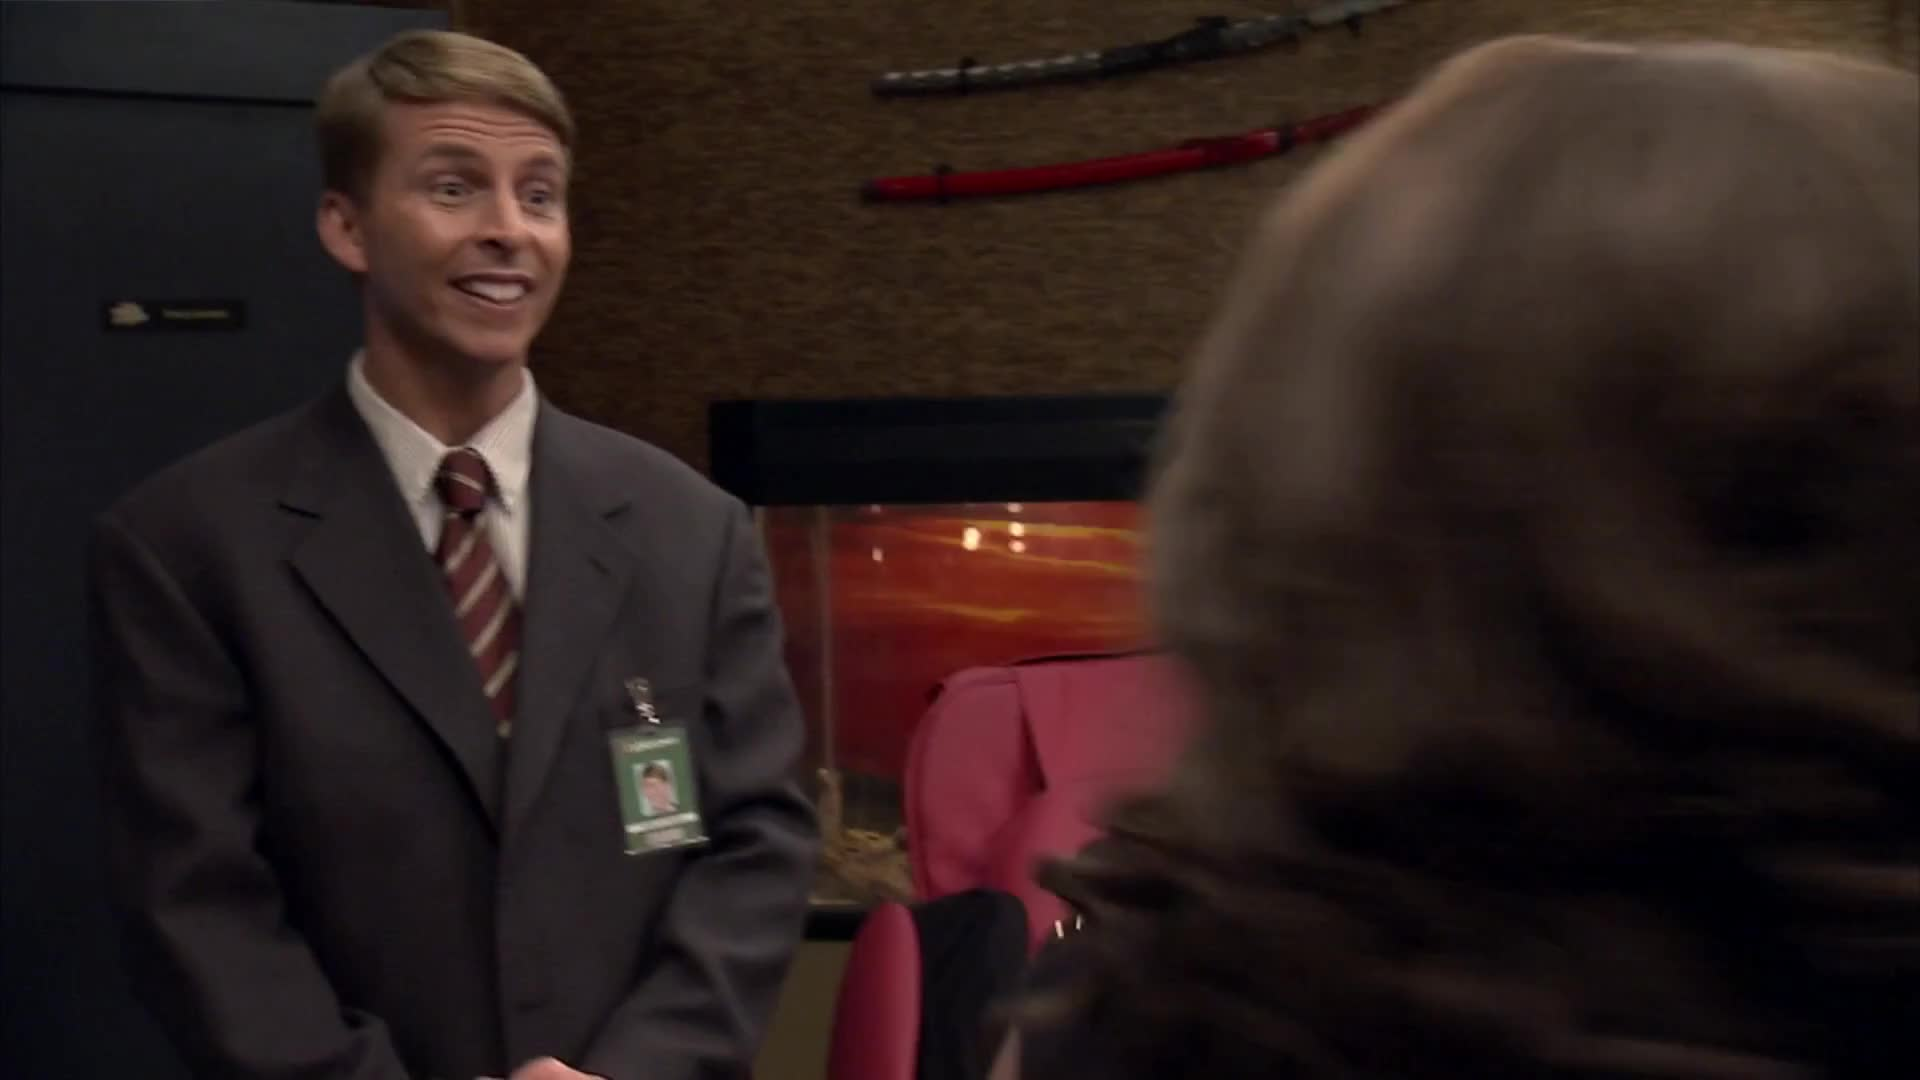 30 ROCK, Angie, Jordan, Queen, S06E20, catch, catchphrase, celebs, cheese, jack mcbrayer, of, phrase, sherri shepherd, some, that, with, That man is about to get some cheese with that GIFs